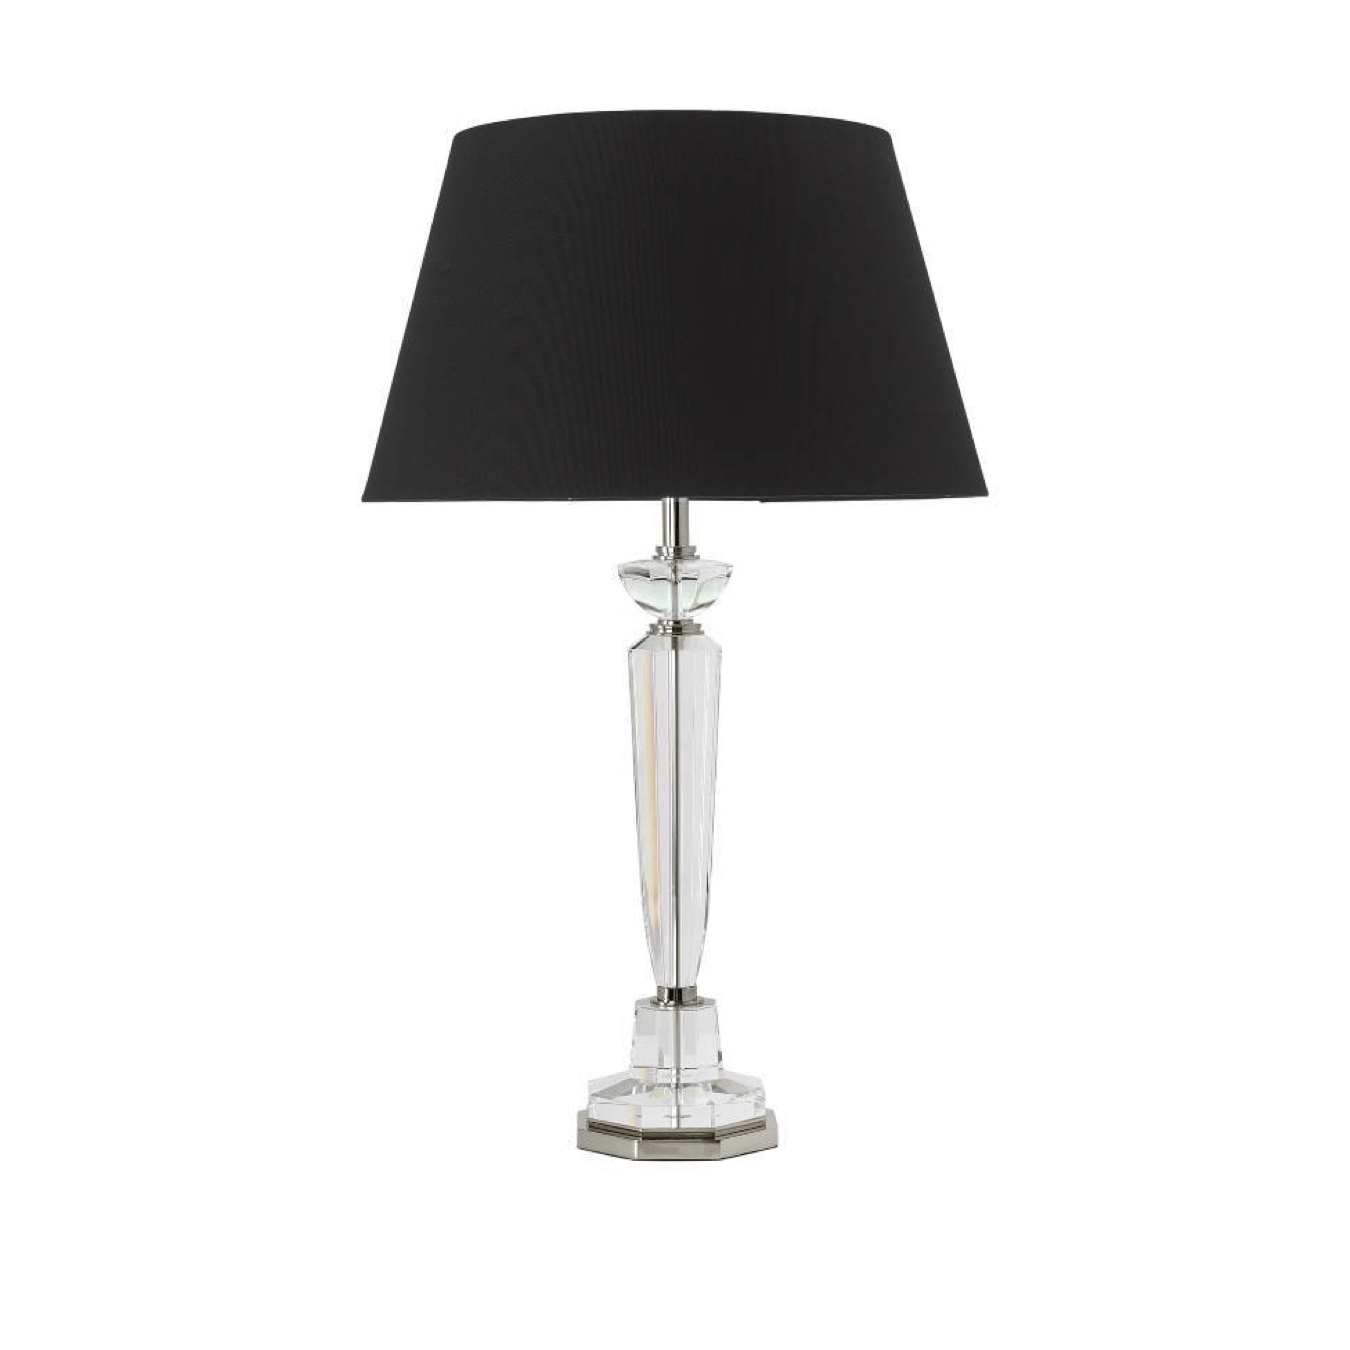 Crystal & Shiny Nickel Table Lamp lighting shops lighting stores LED lights  lighting designer